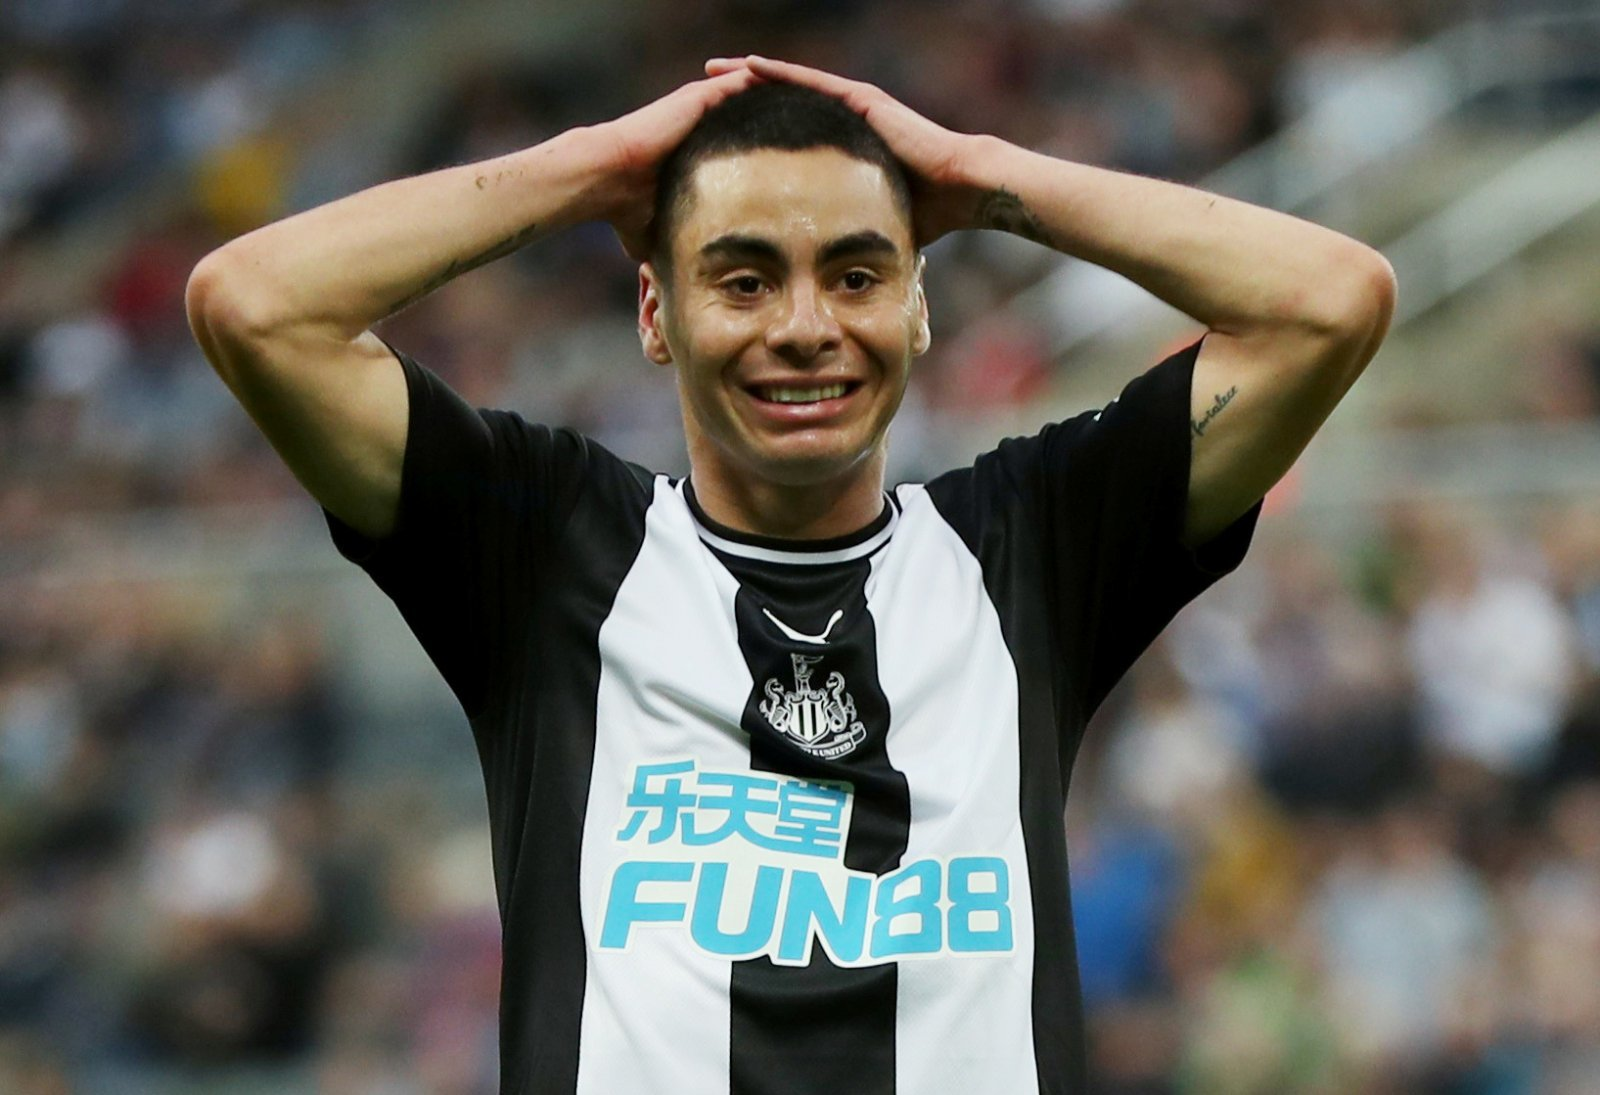 Newcastle United: Fans react to Miguel Almiron's heartwarming gesture